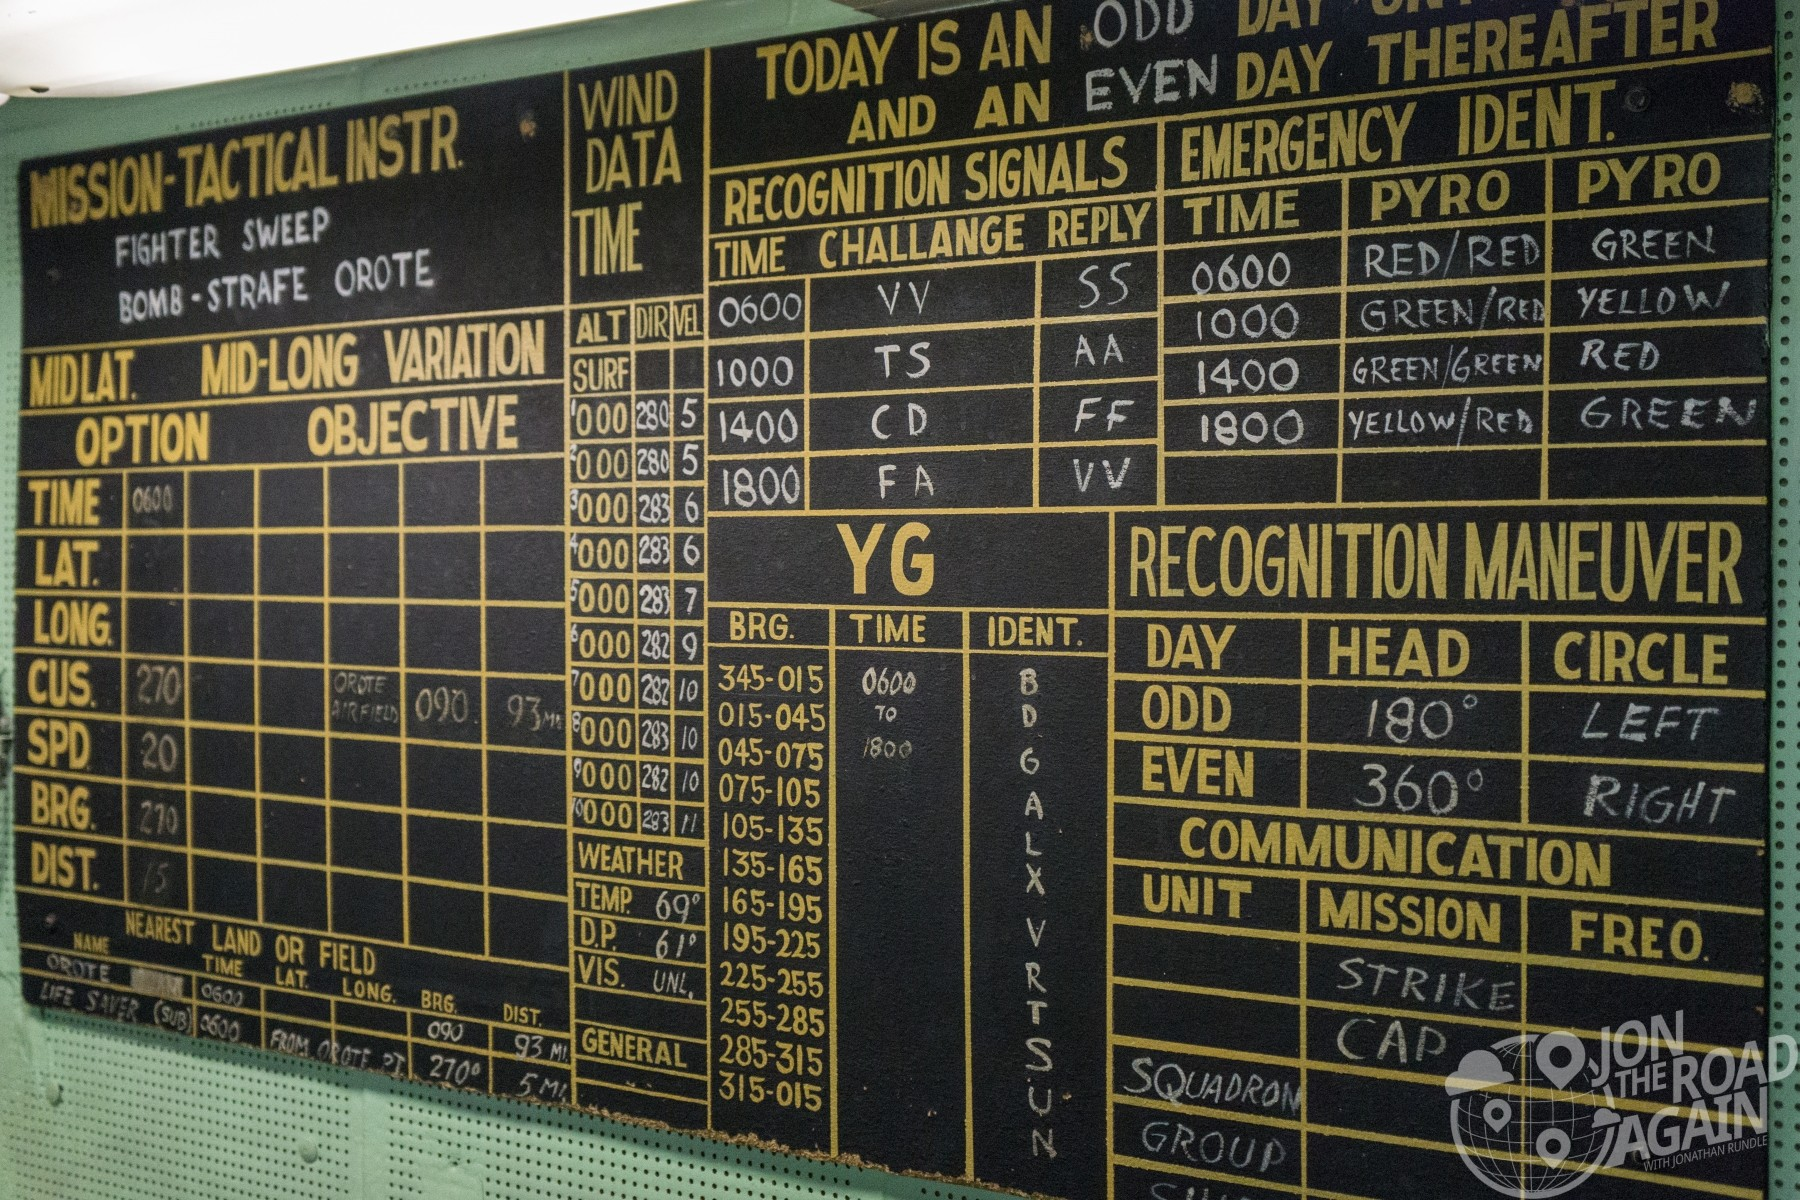 Pilot schedule on USS Yorktown